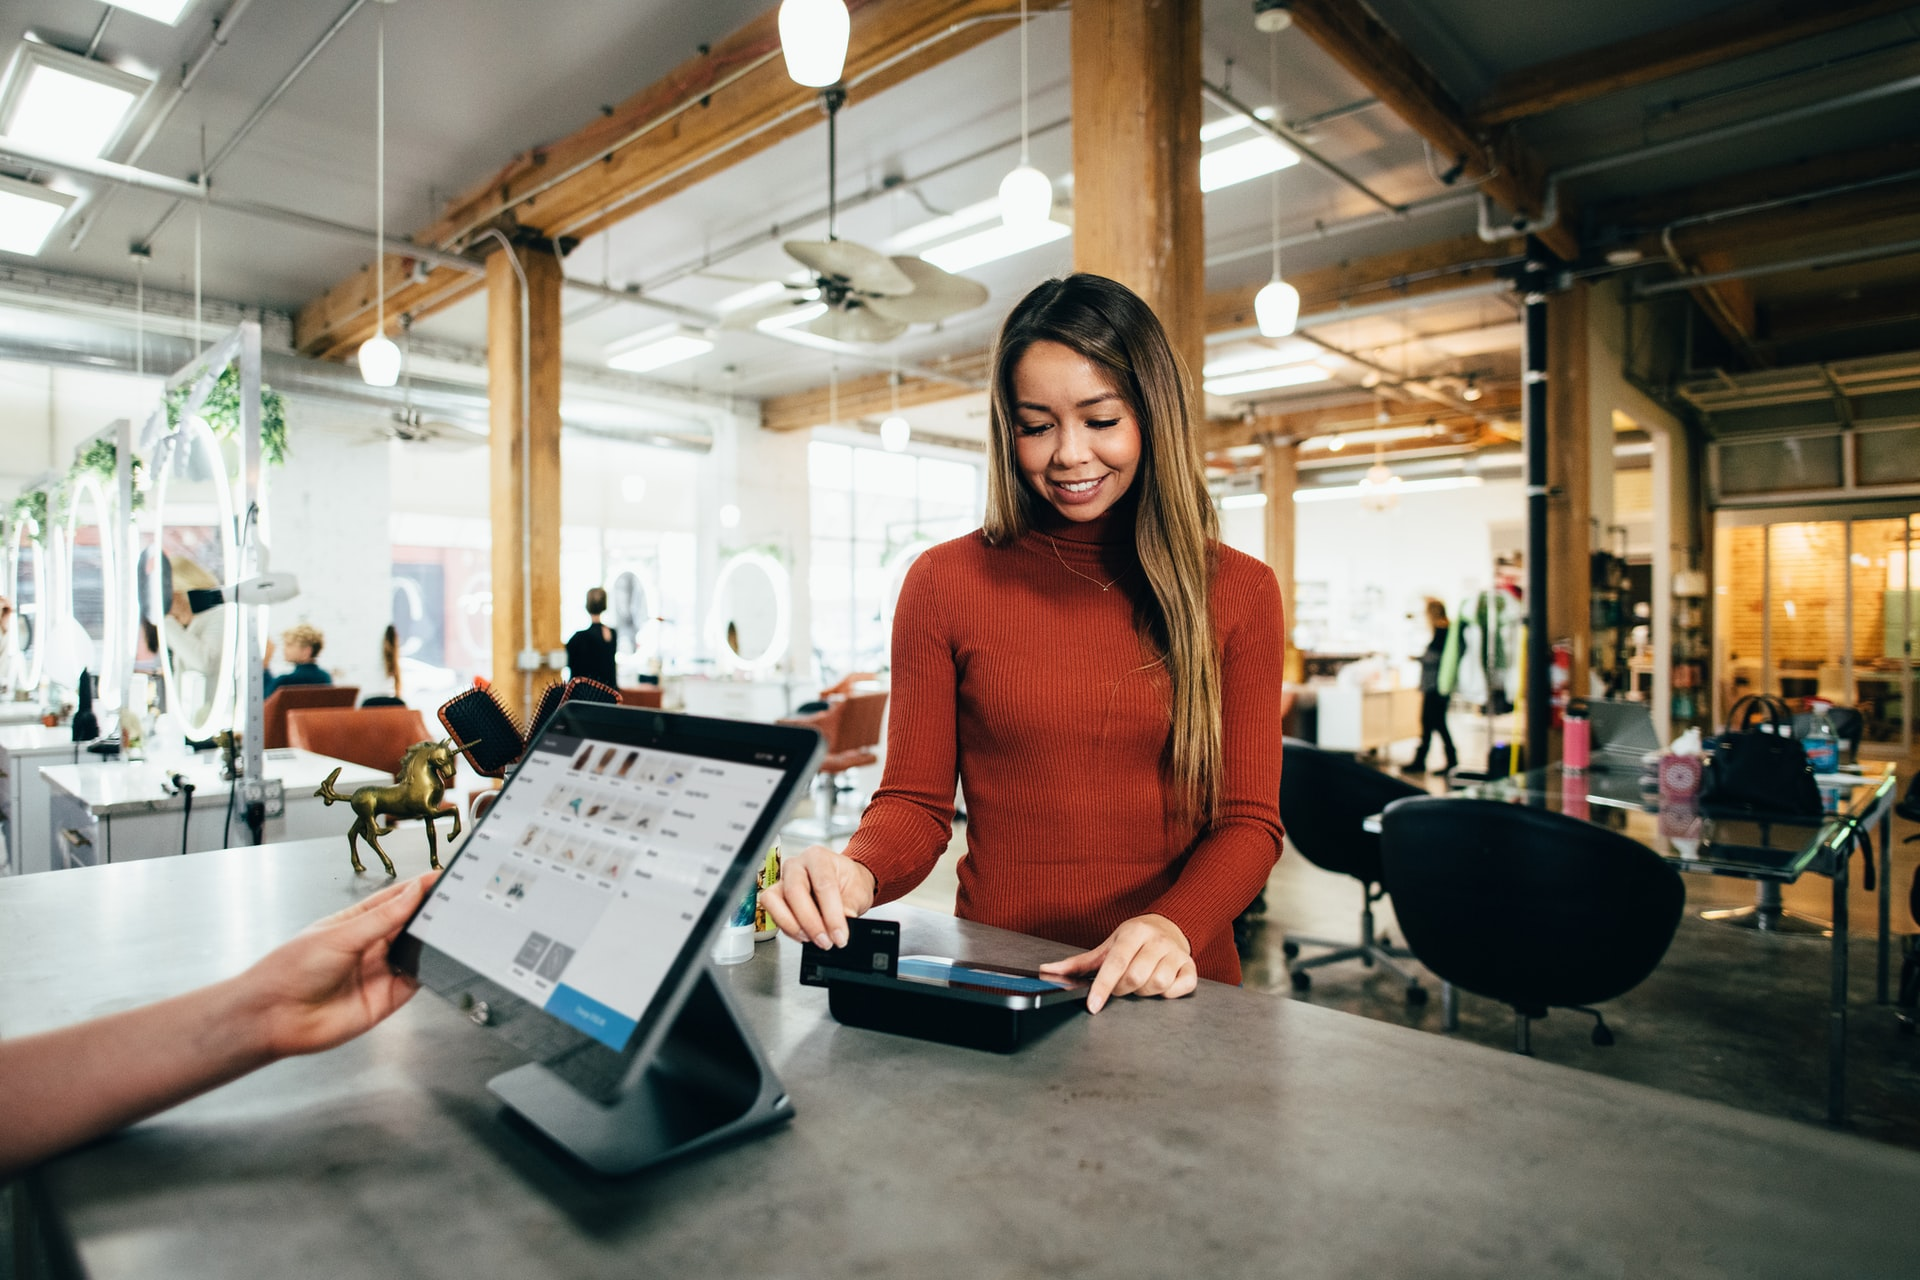 Is it Time to Upgrade Your POS Equipment?